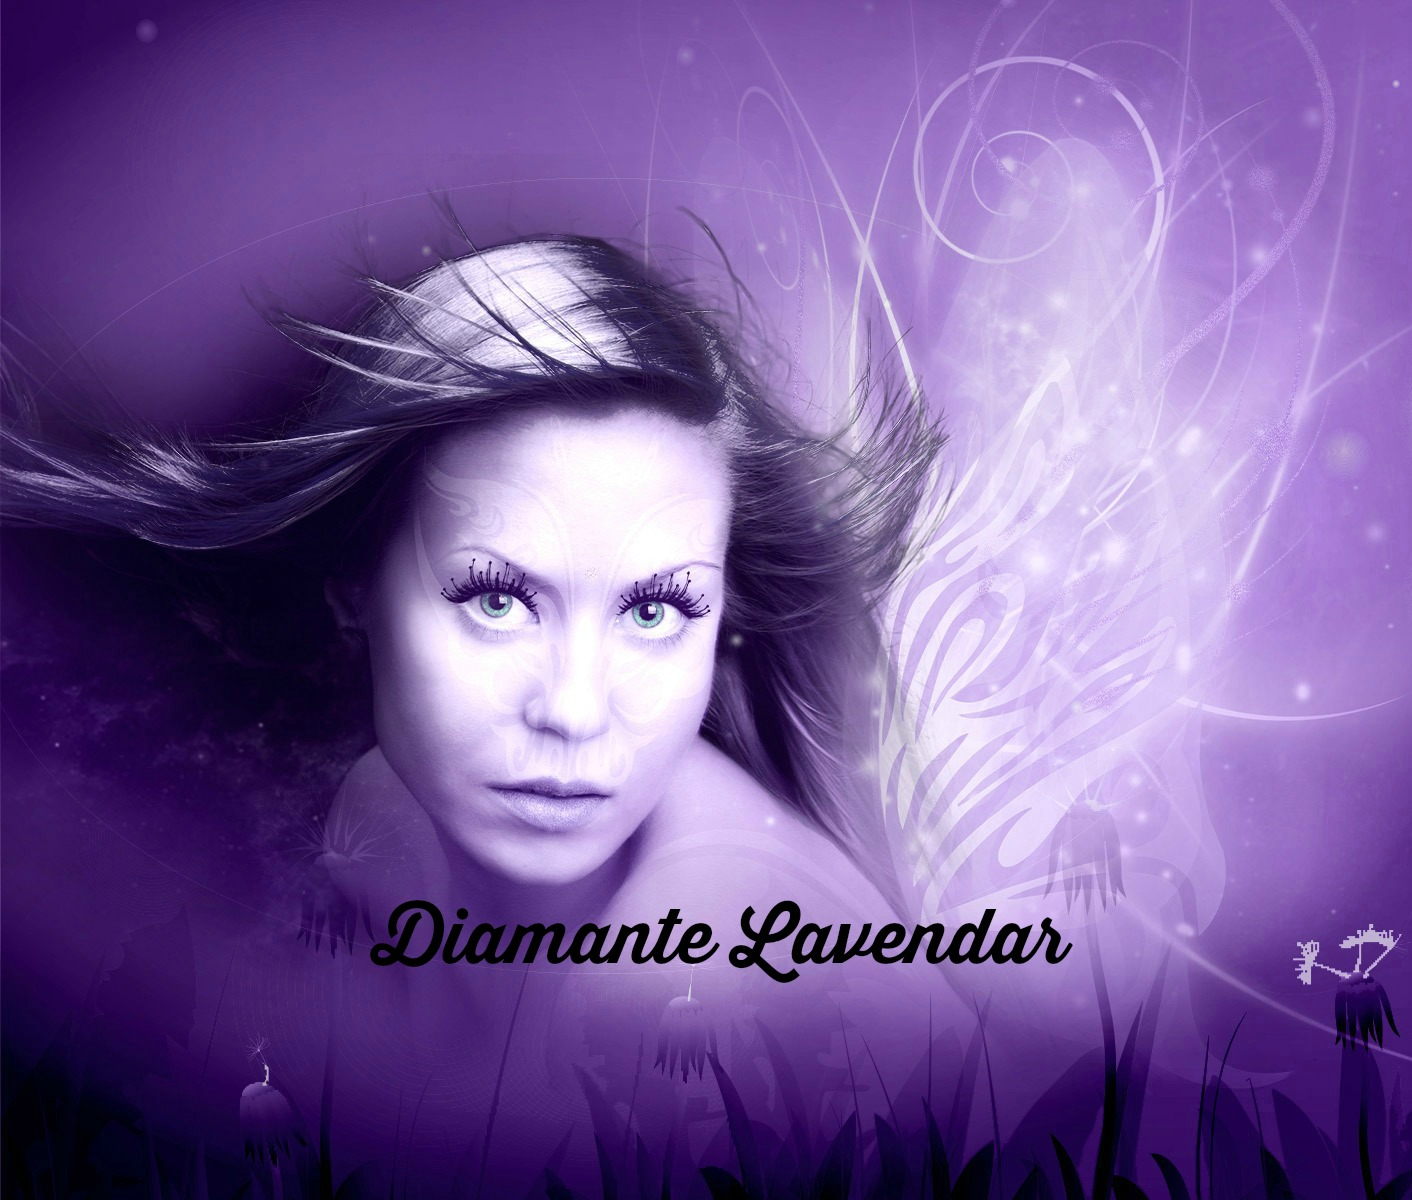 Cropped image for my website with Diamante Lavendar written on it.jpg